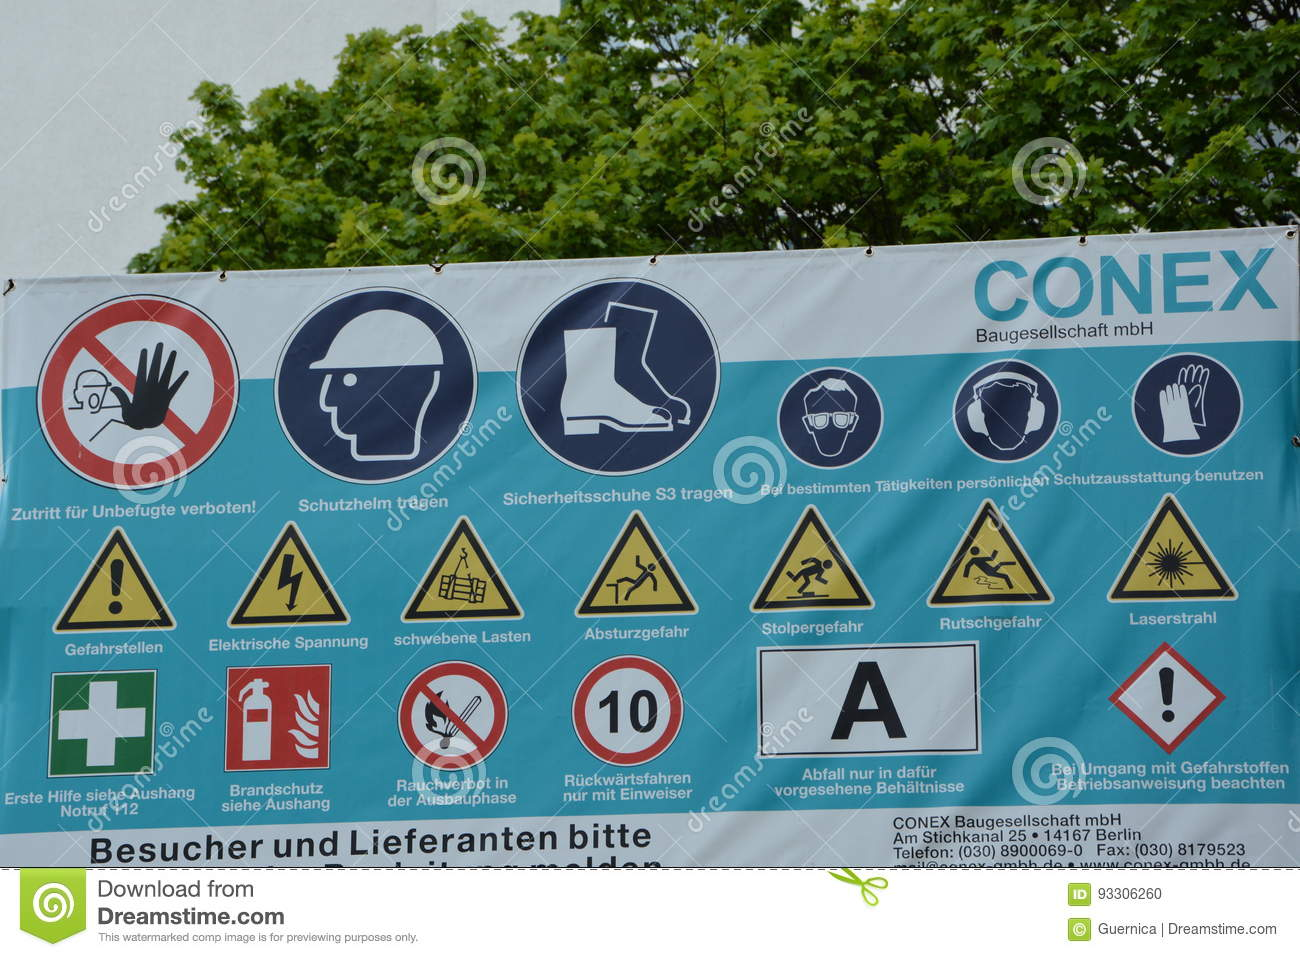 Construction Warning German Signs With Many Safety Related Symbols